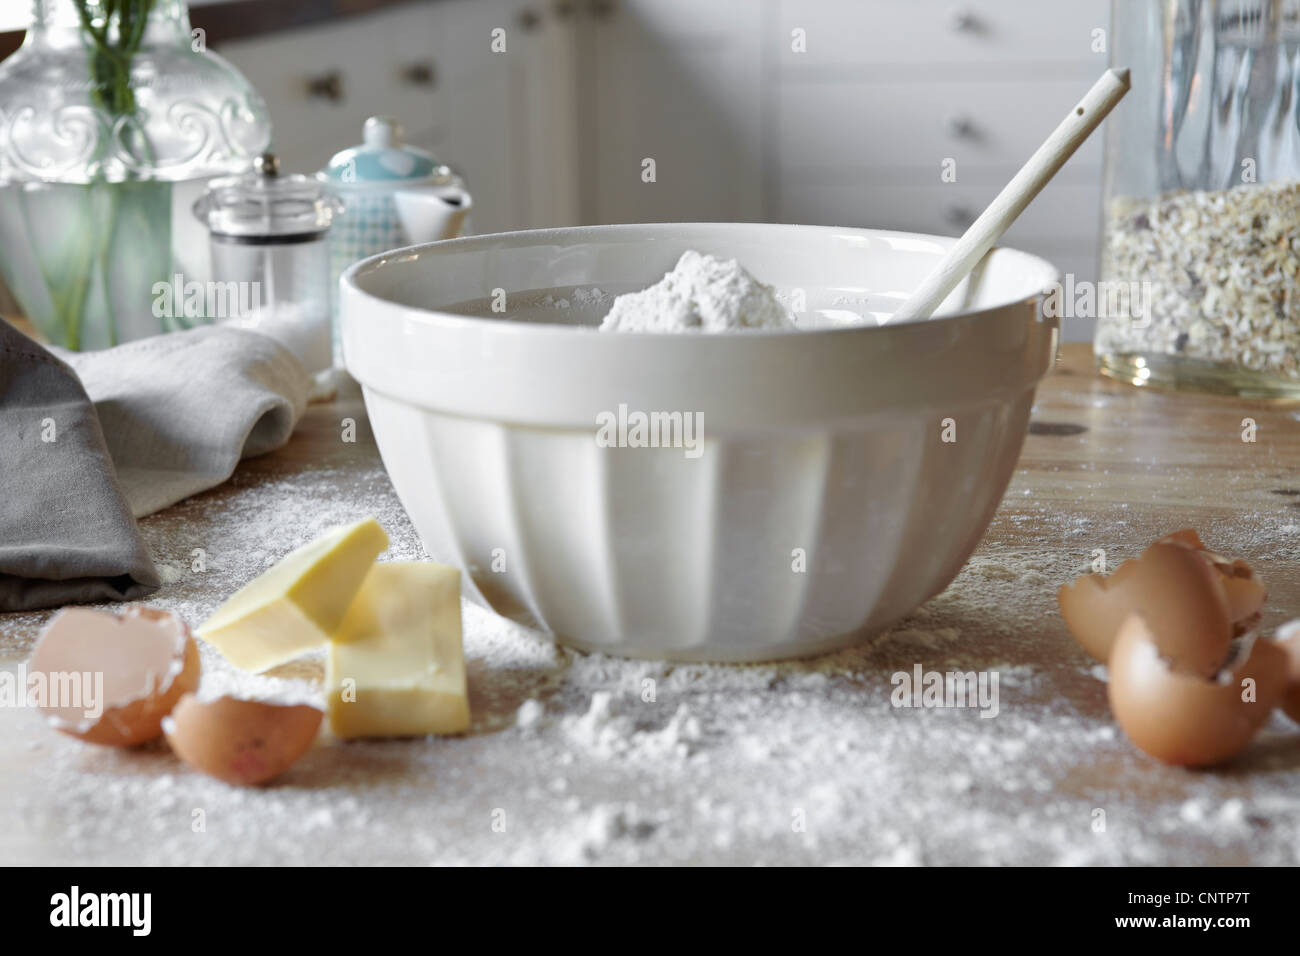 Bowl of mixing dough in messy kitchen - Stock Image